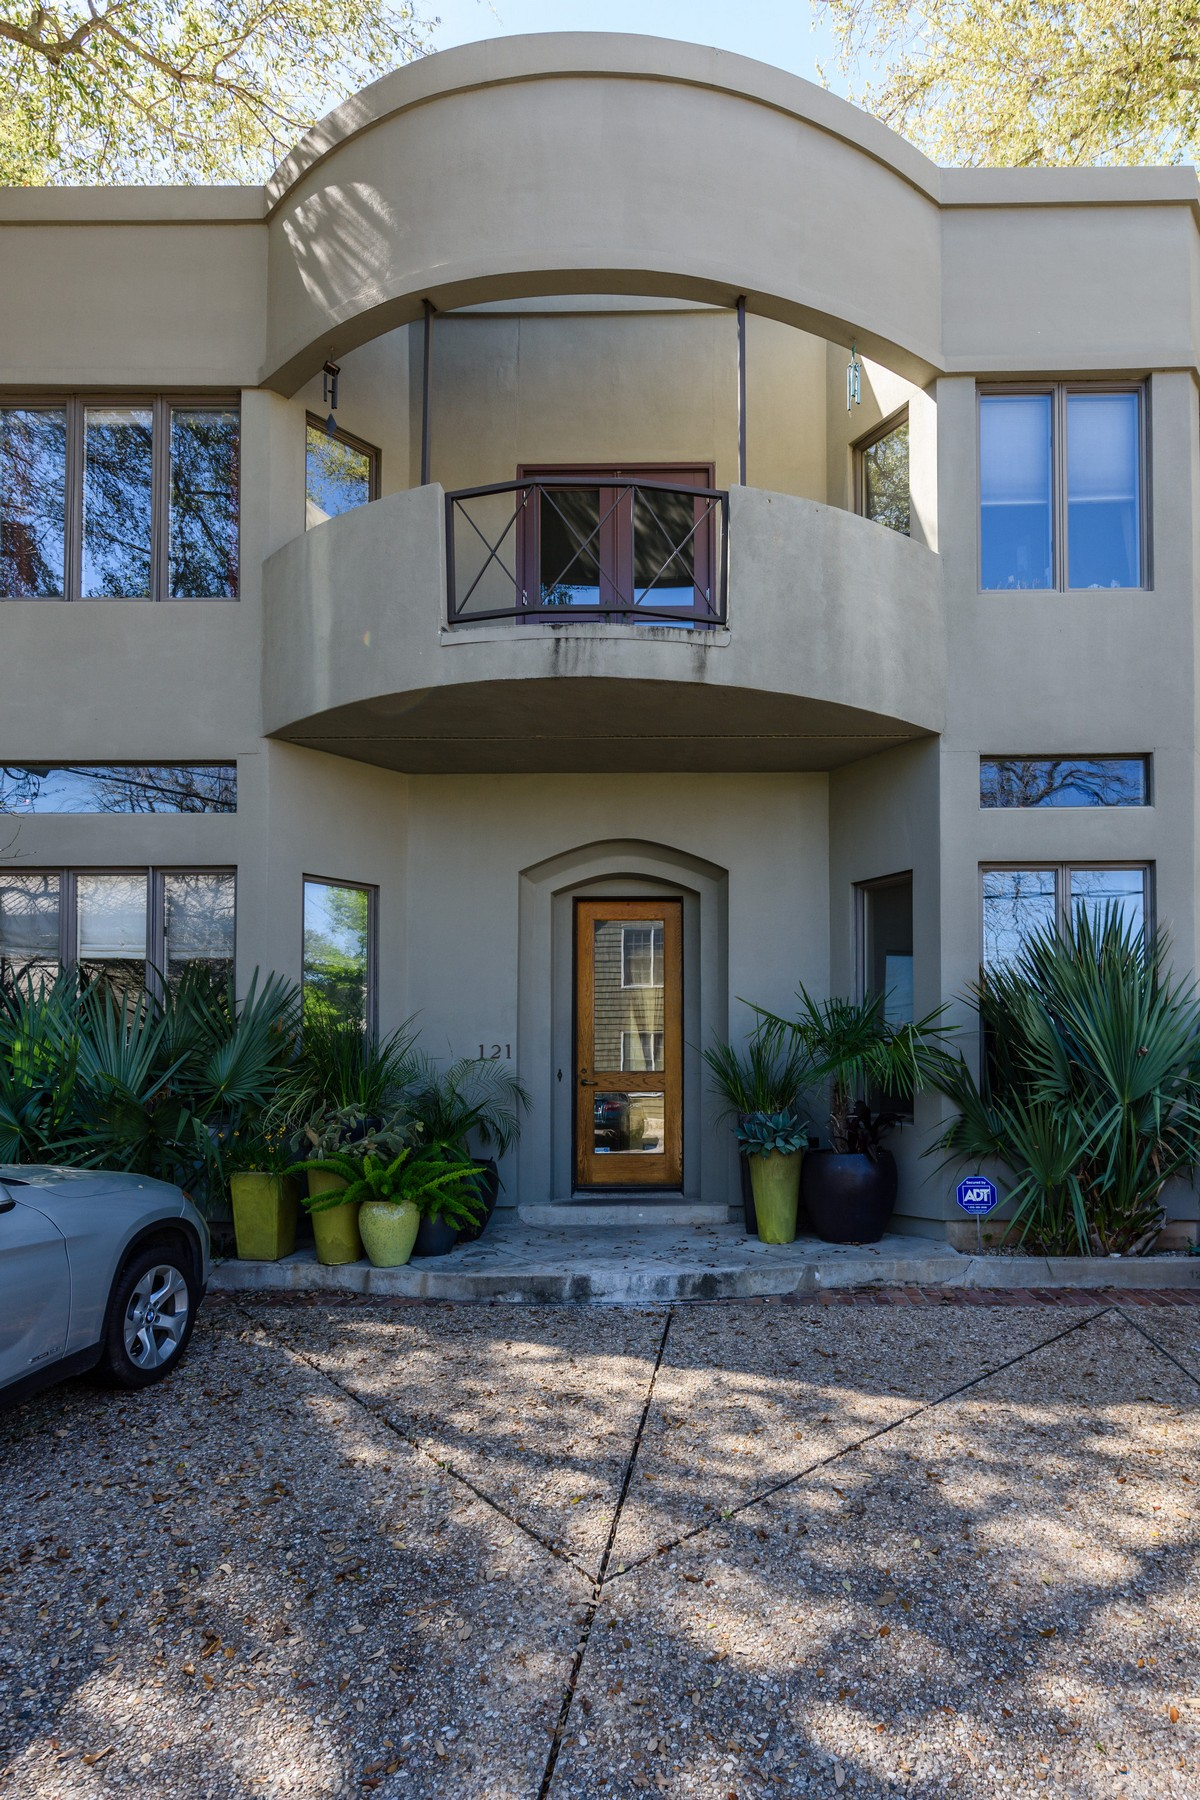 Additional photo for property listing at Coveted De Saligny 1111 W 12th 121 Austin, Texas 78703 Estados Unidos